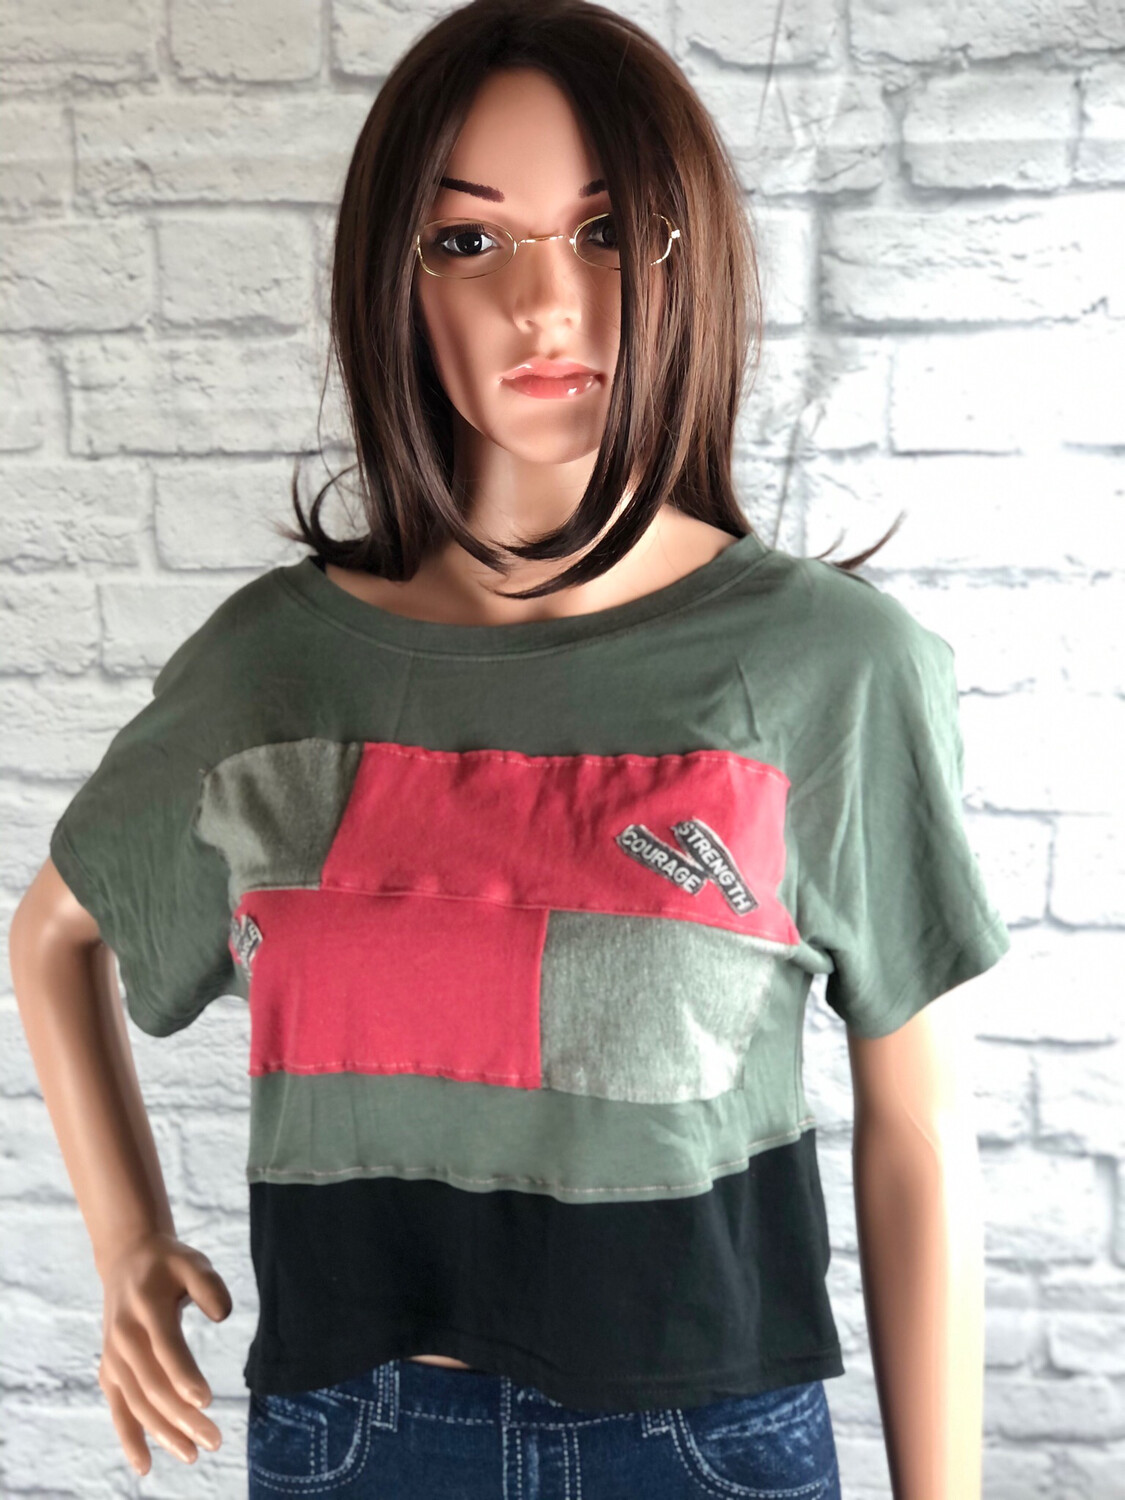 S Threads Upcycled Crop Bold Unstoppable Top Size Medium